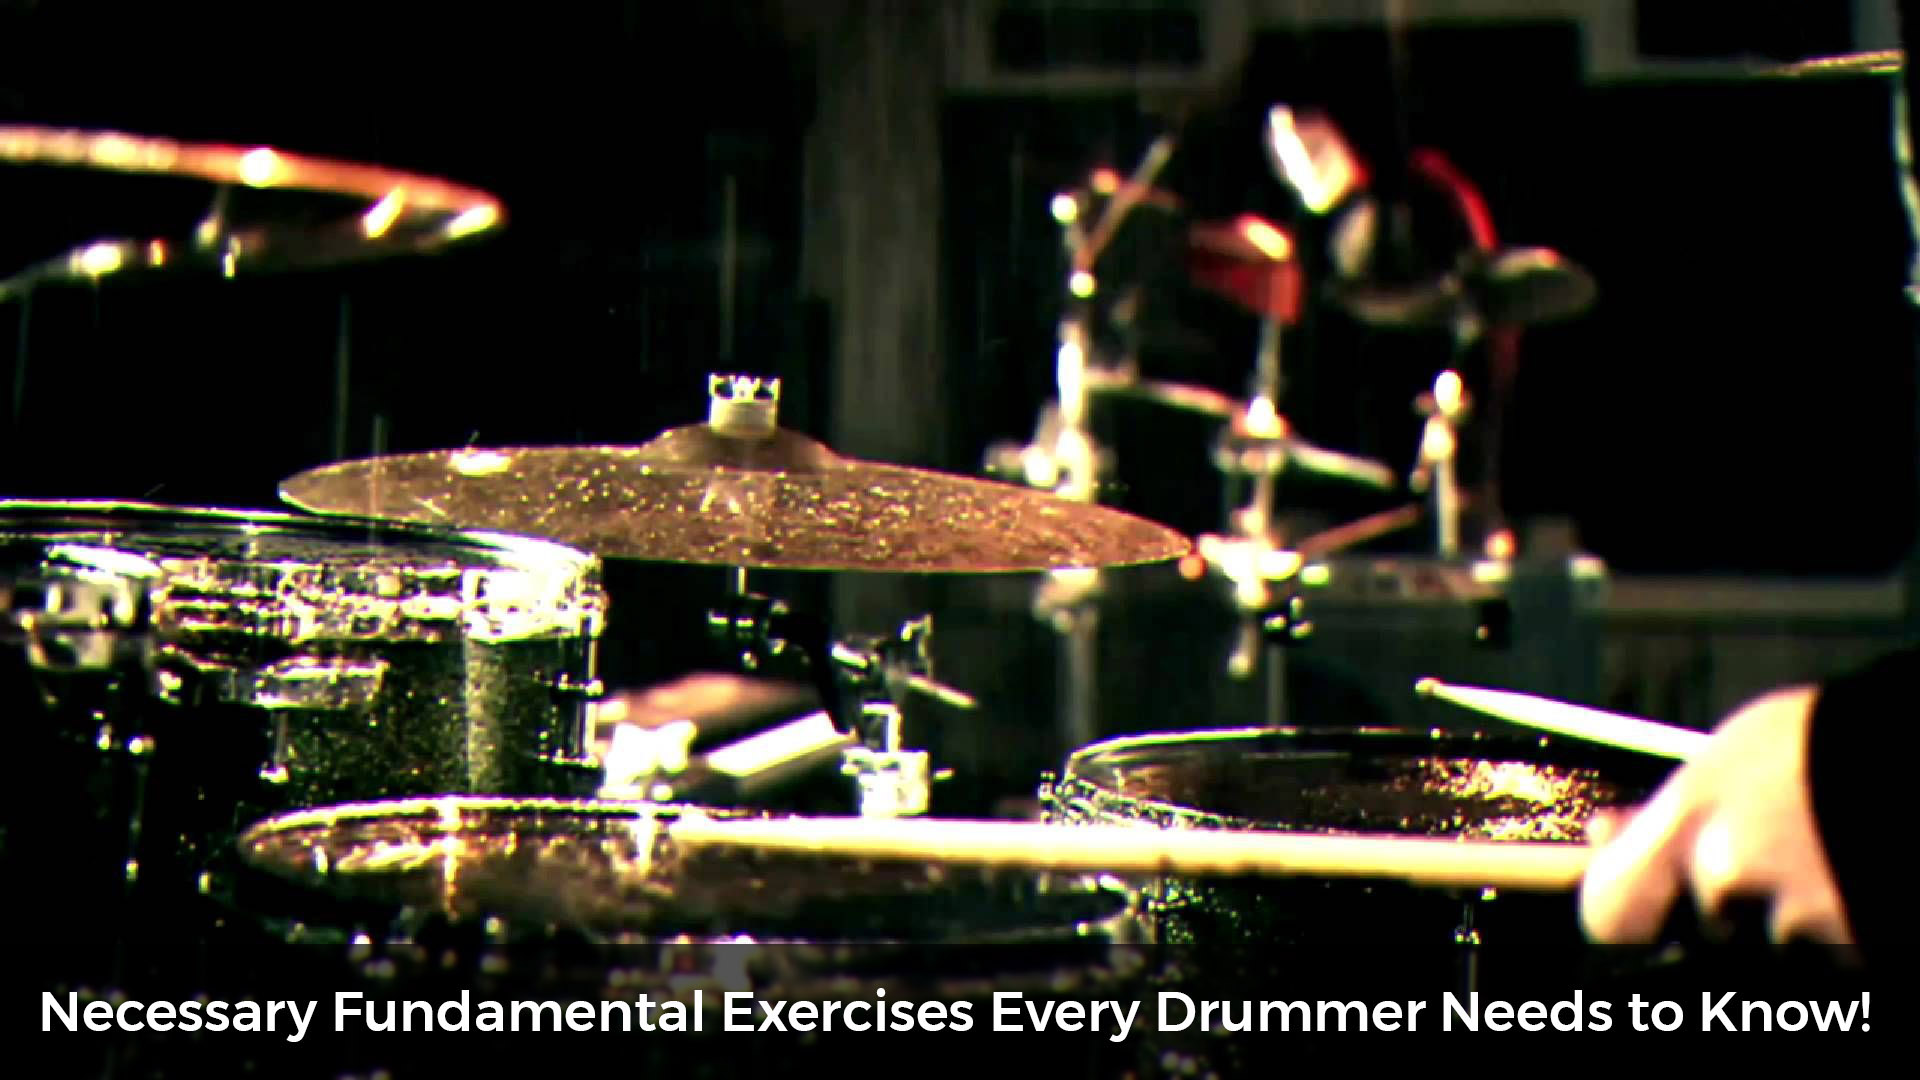 Fundamental Exercises Every Drummer